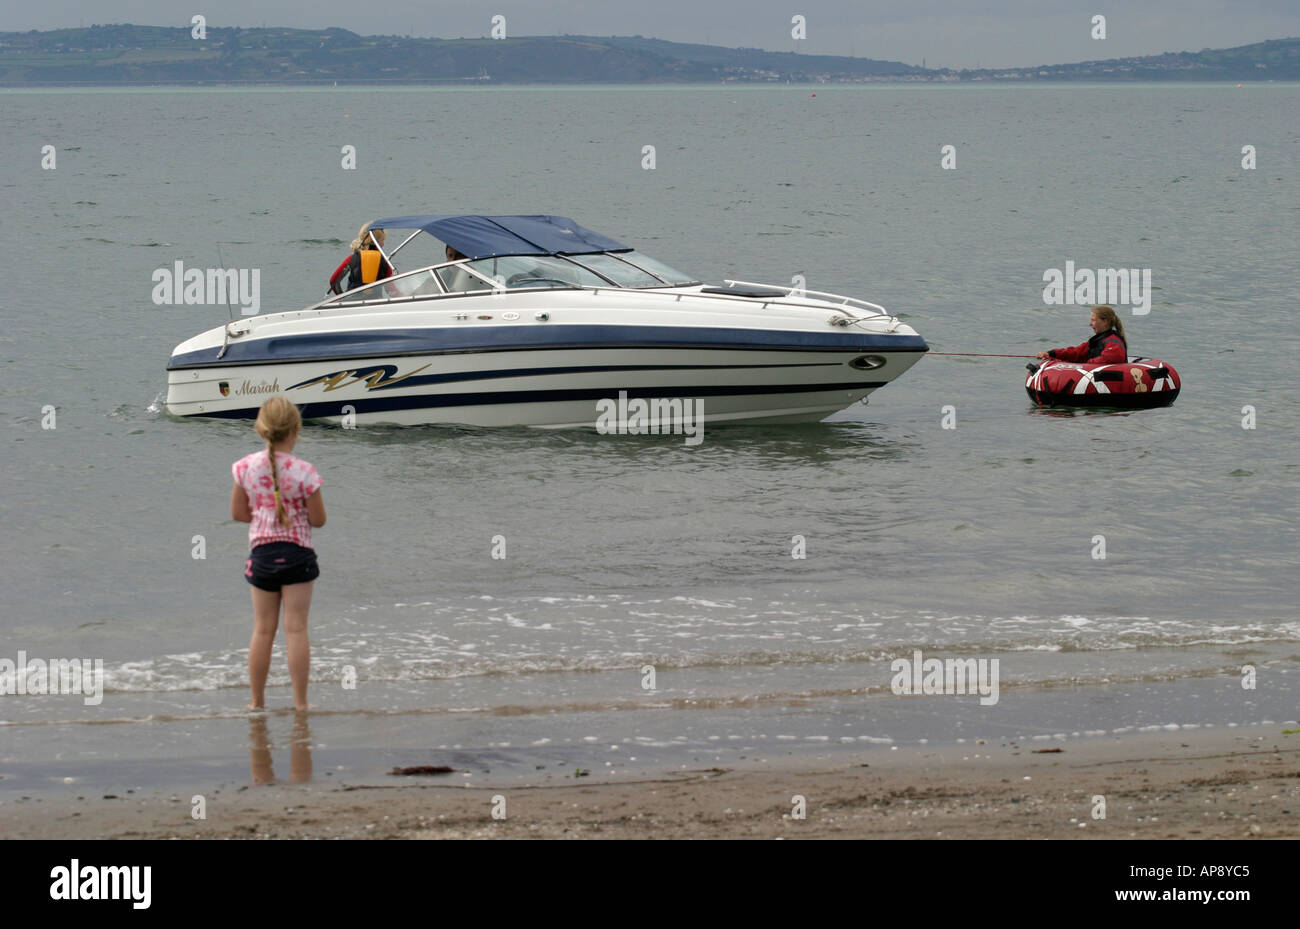 Family with powerboat and inflatable ring enjoy the sea off Ballyholme beach bangor county down - Stock Image